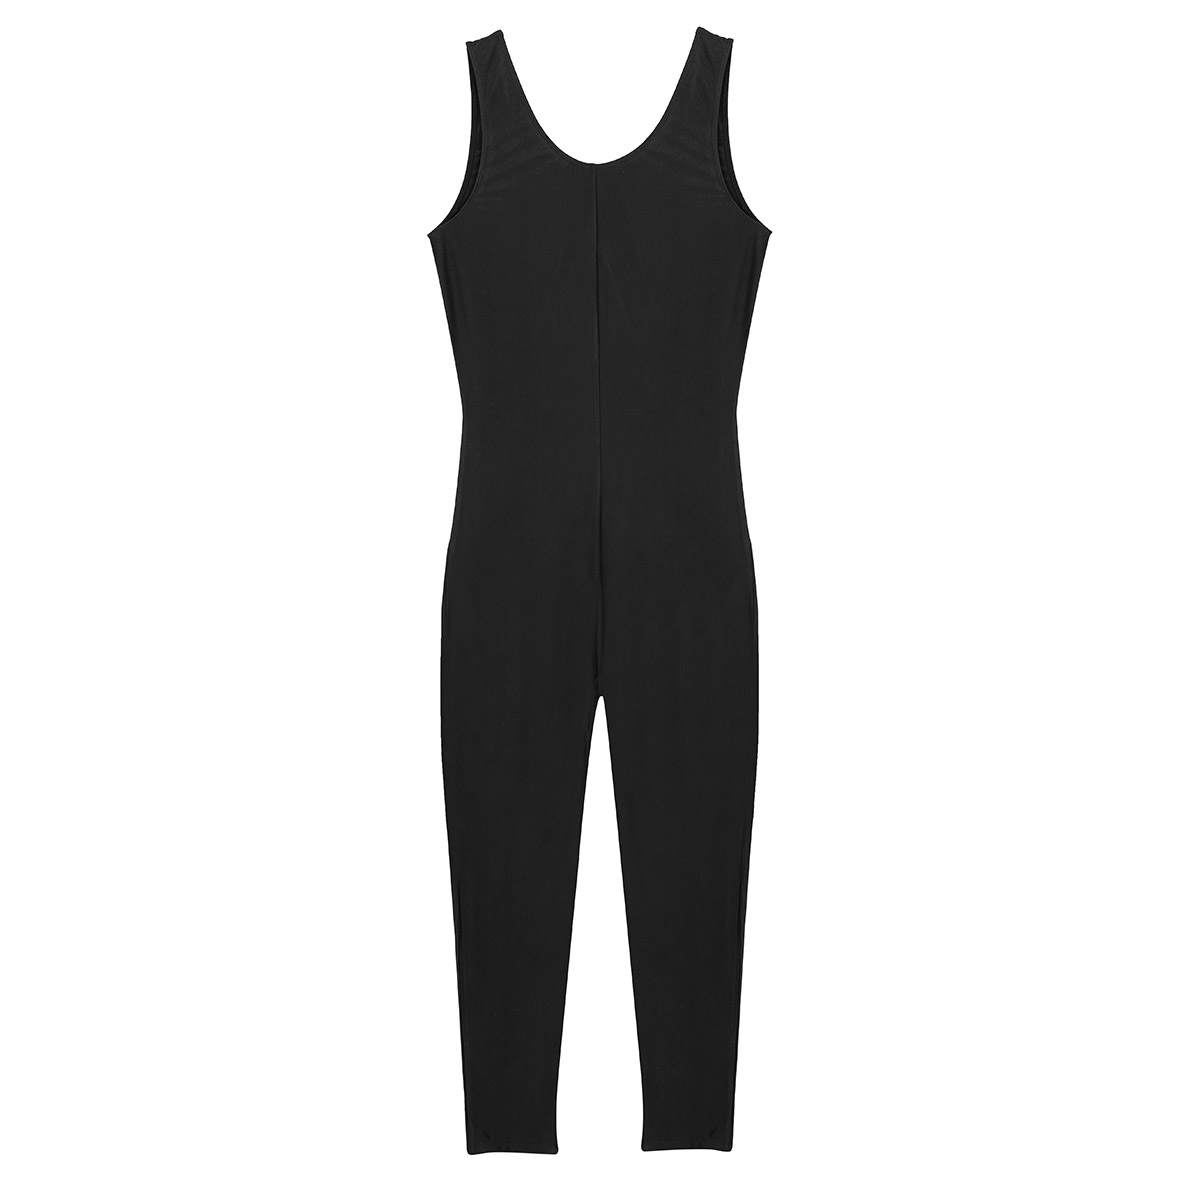 Men Sleeveless Leotard Bodysuit Lycra Tights Leggings for Ballet Dance Vest Teddy Sports Unitard Catsuit Male Dancewear Jumpsuit 33